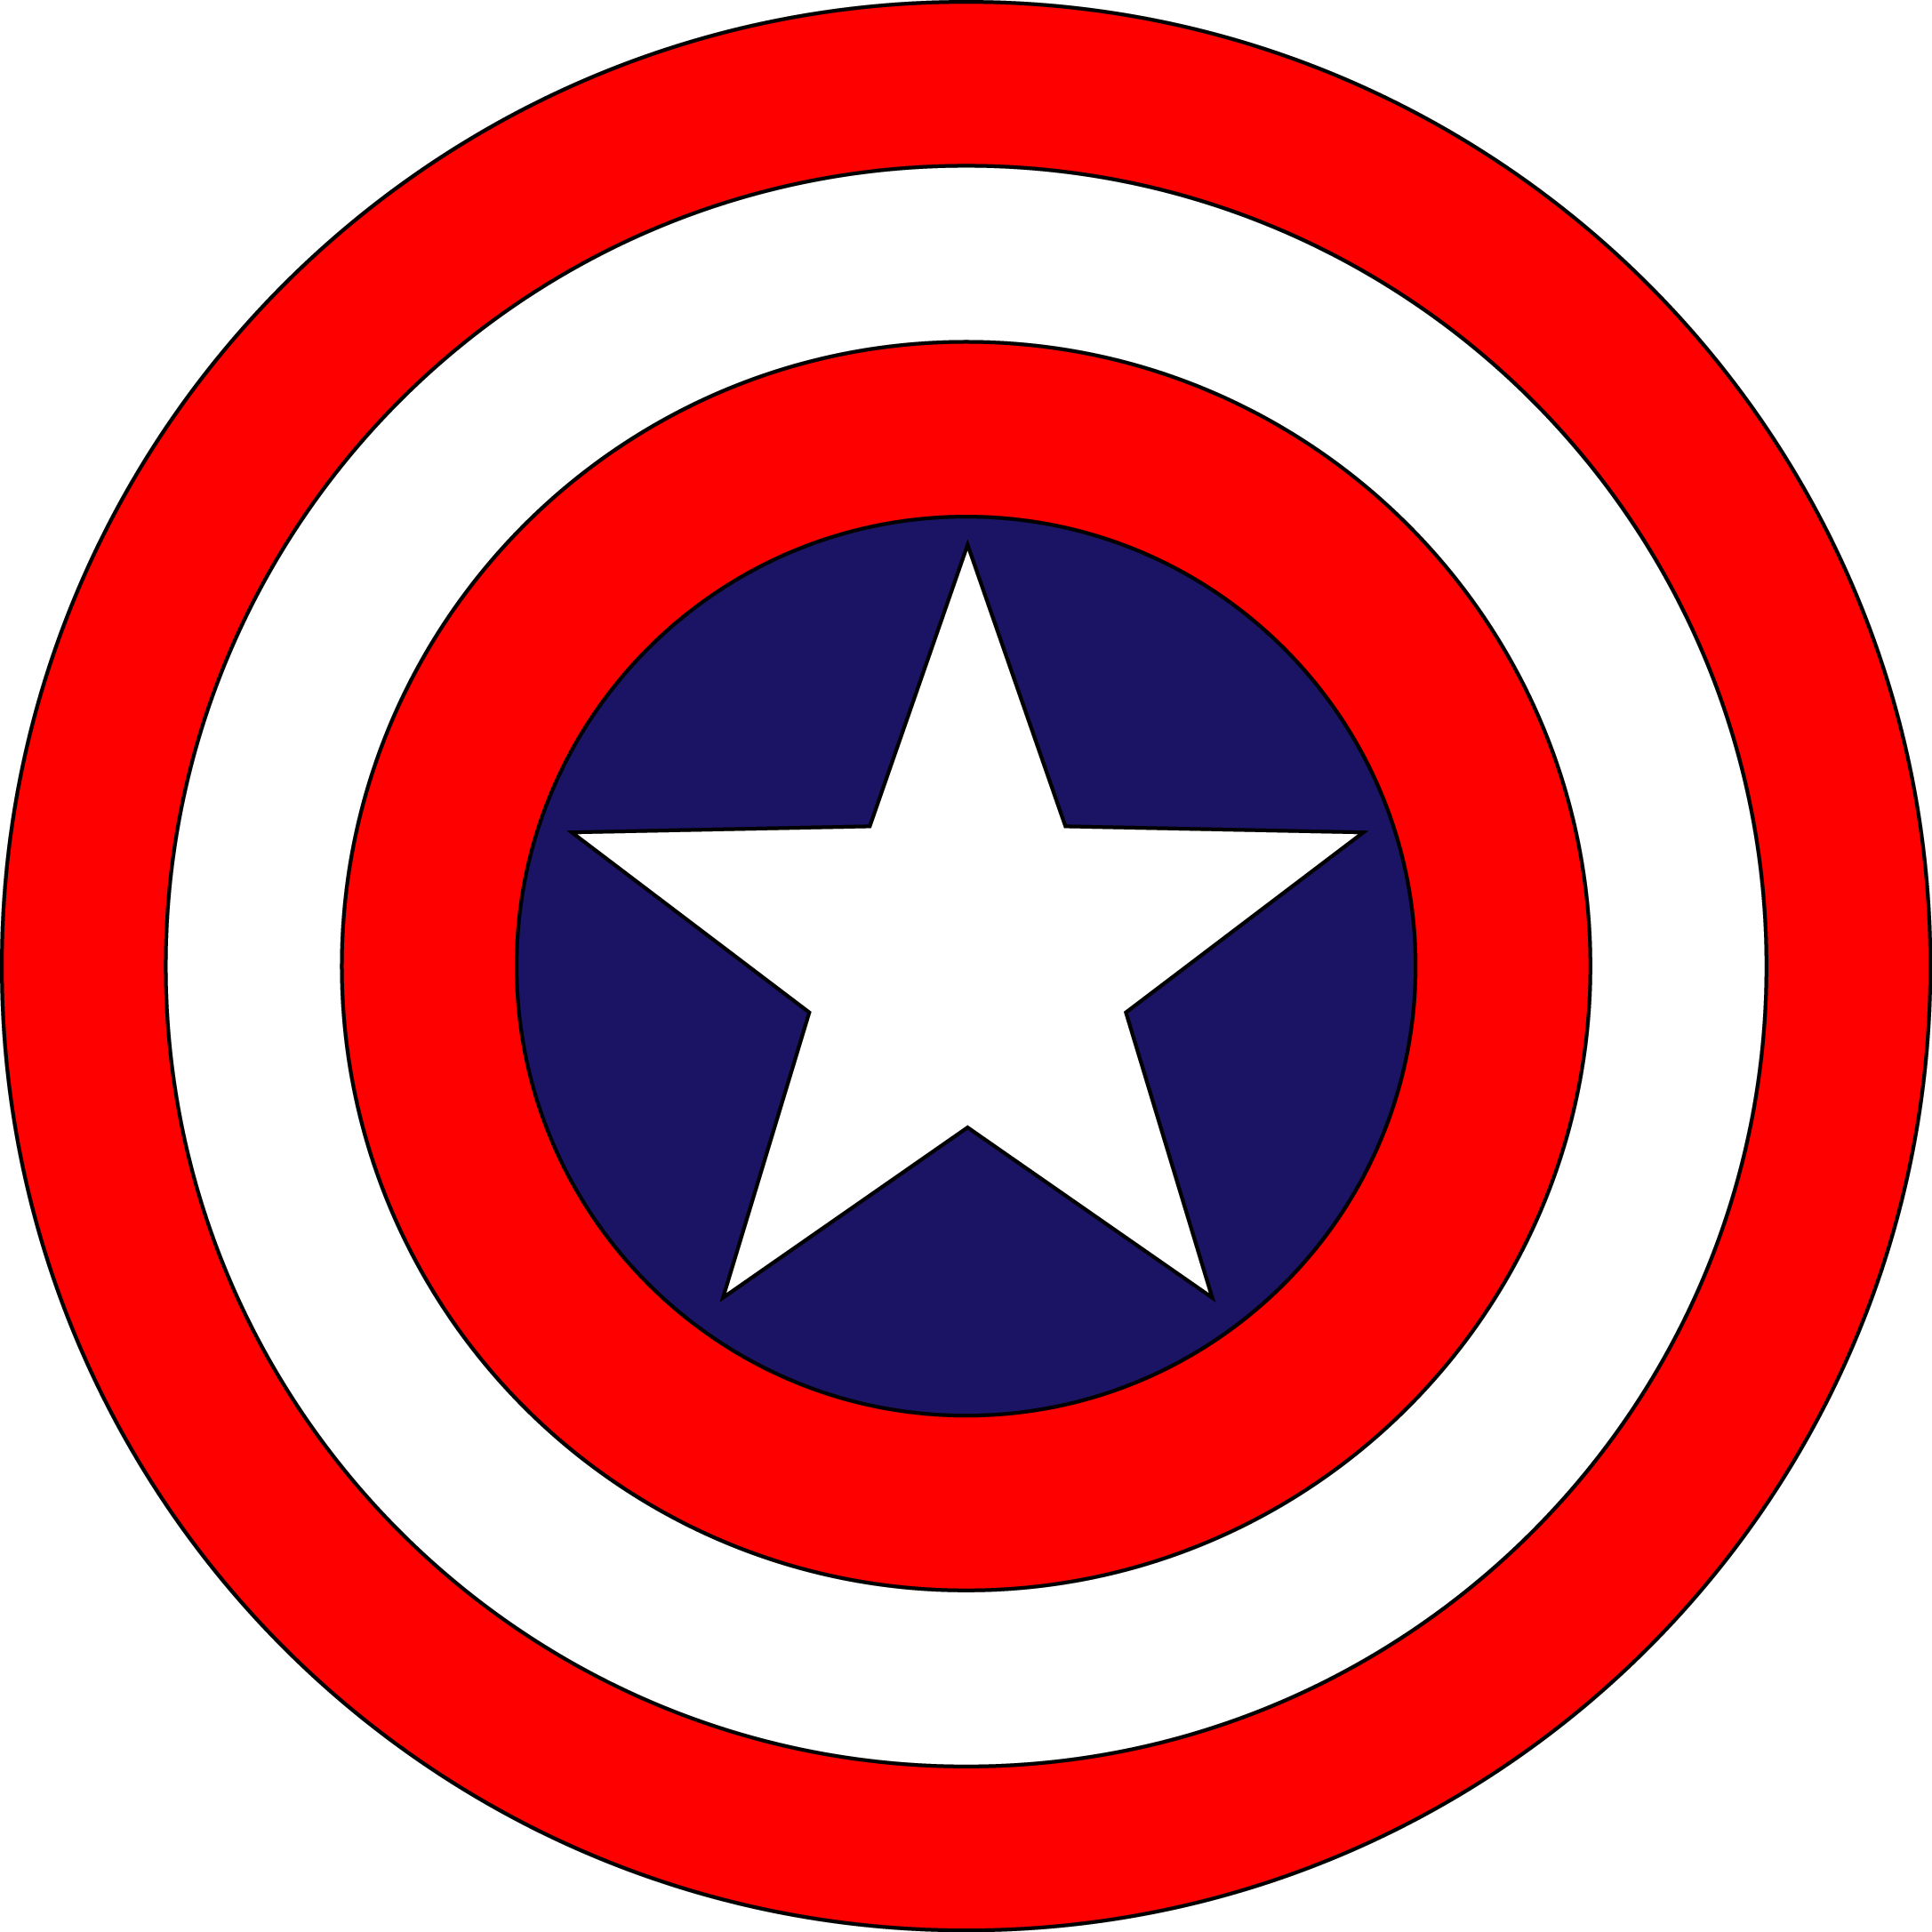 Escudo Capitao America Png 1 Png Image